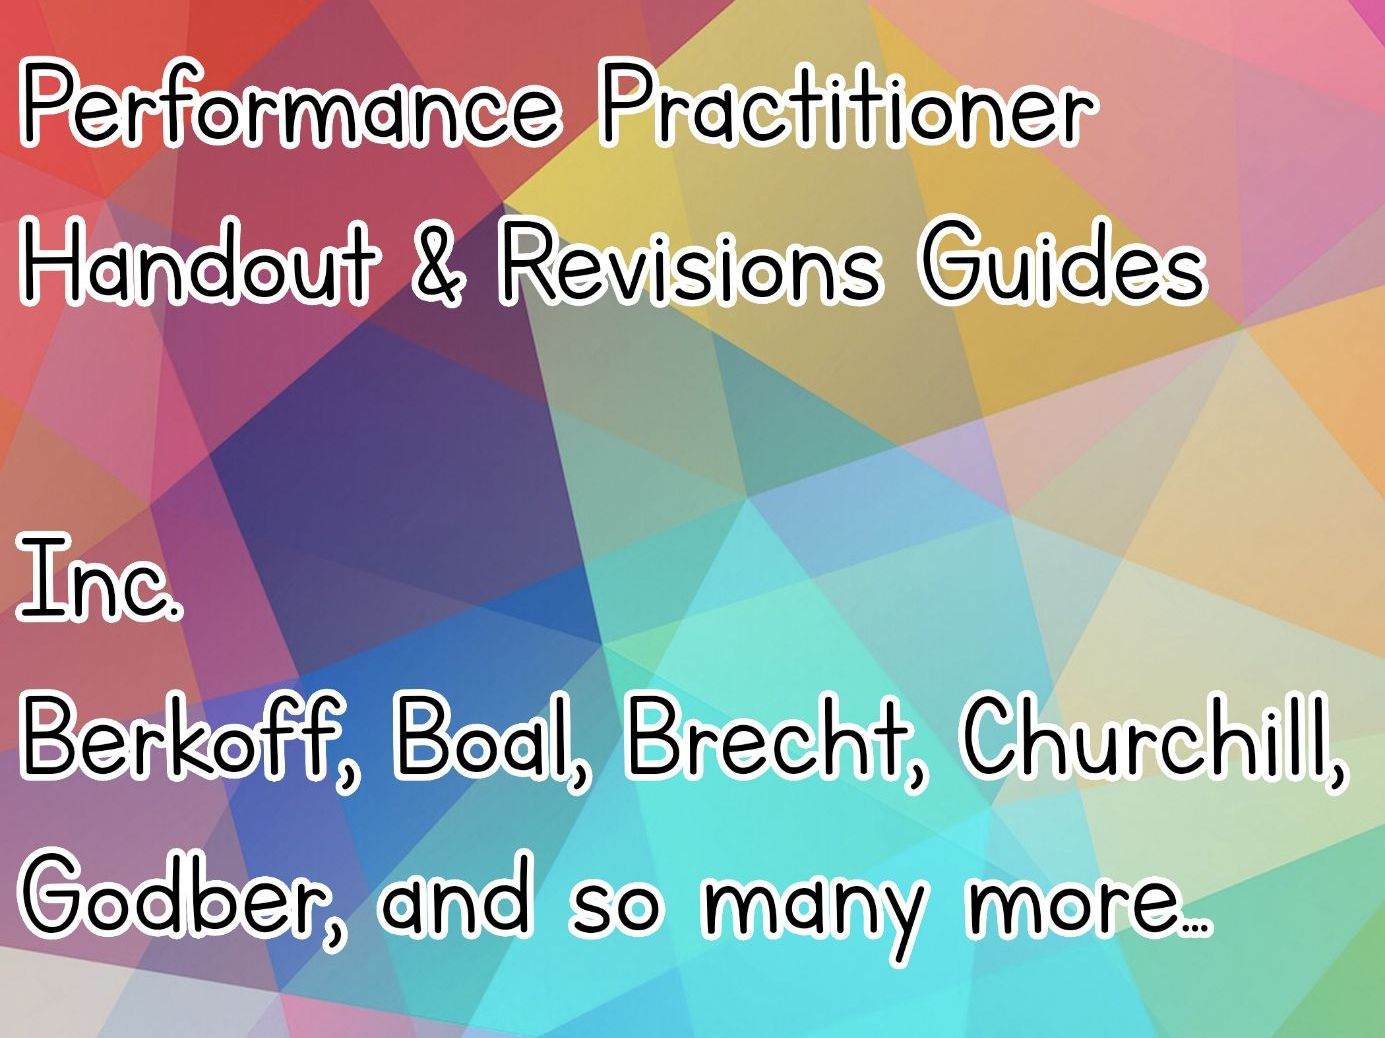 Performance Practitioner Handout / Revision Guides